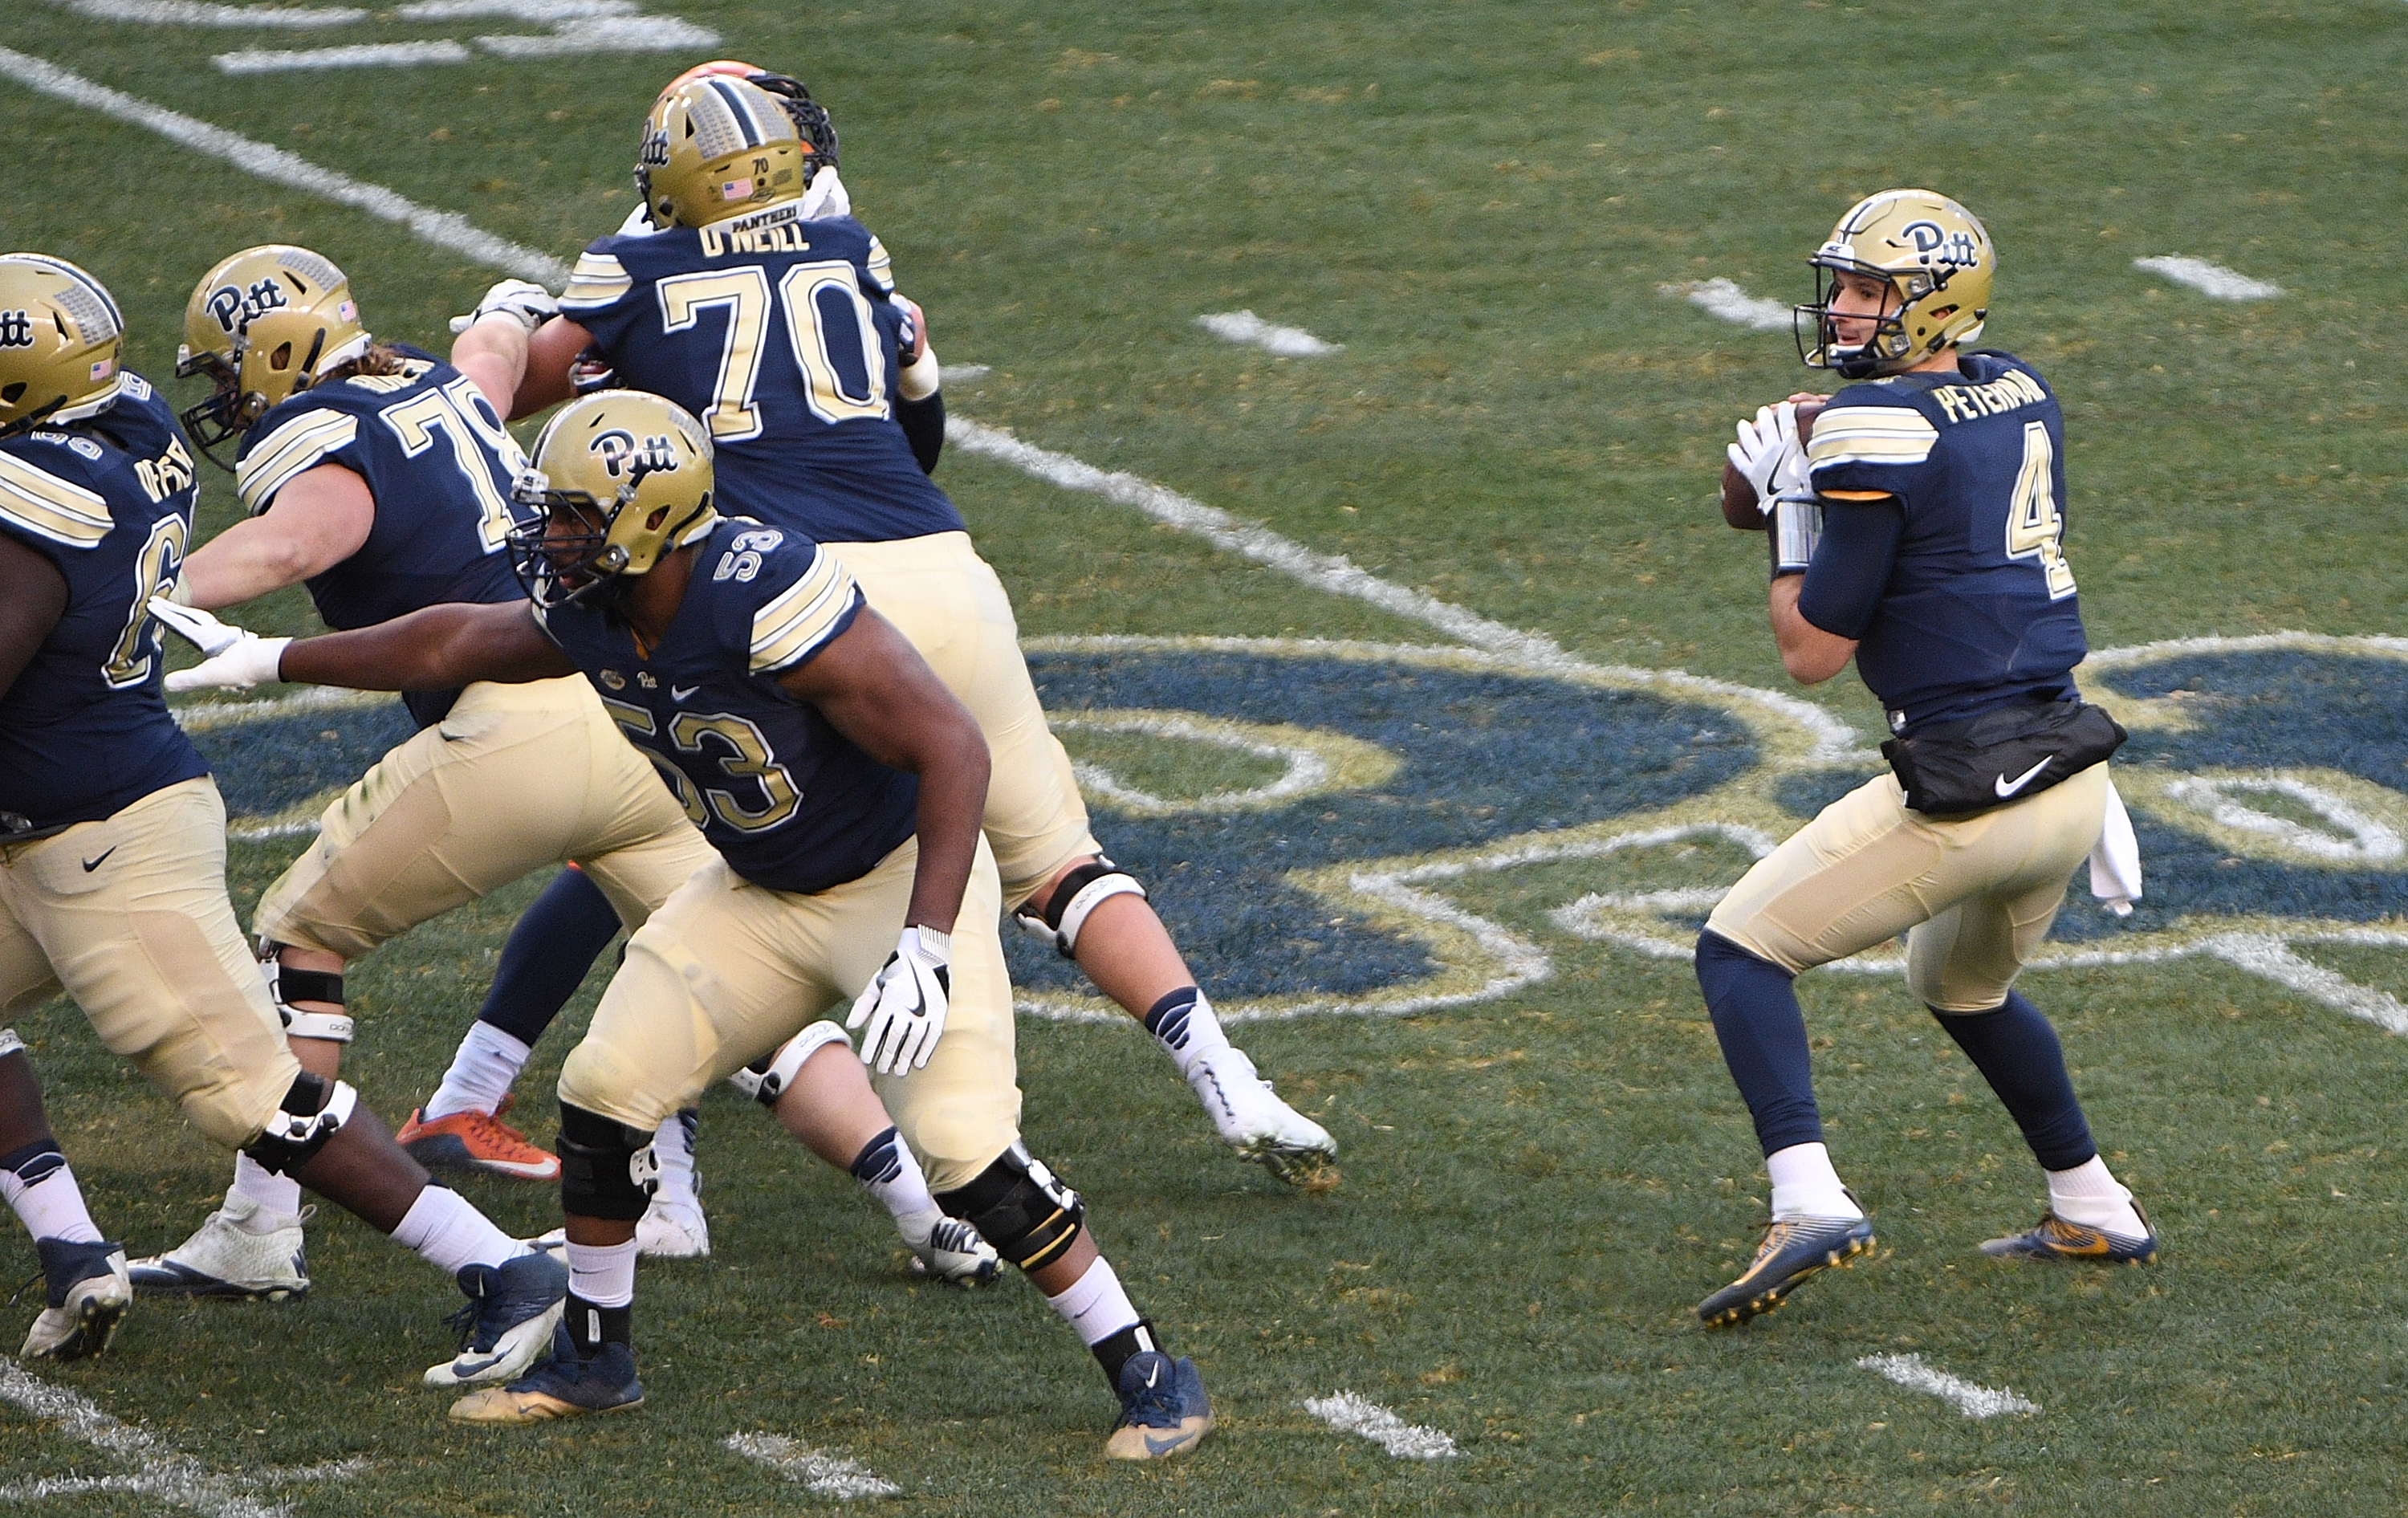 Pitt quarterback Nathan Peterman threw for 27 touchdowns and just seven interceptions in 2016 (Getty Images)